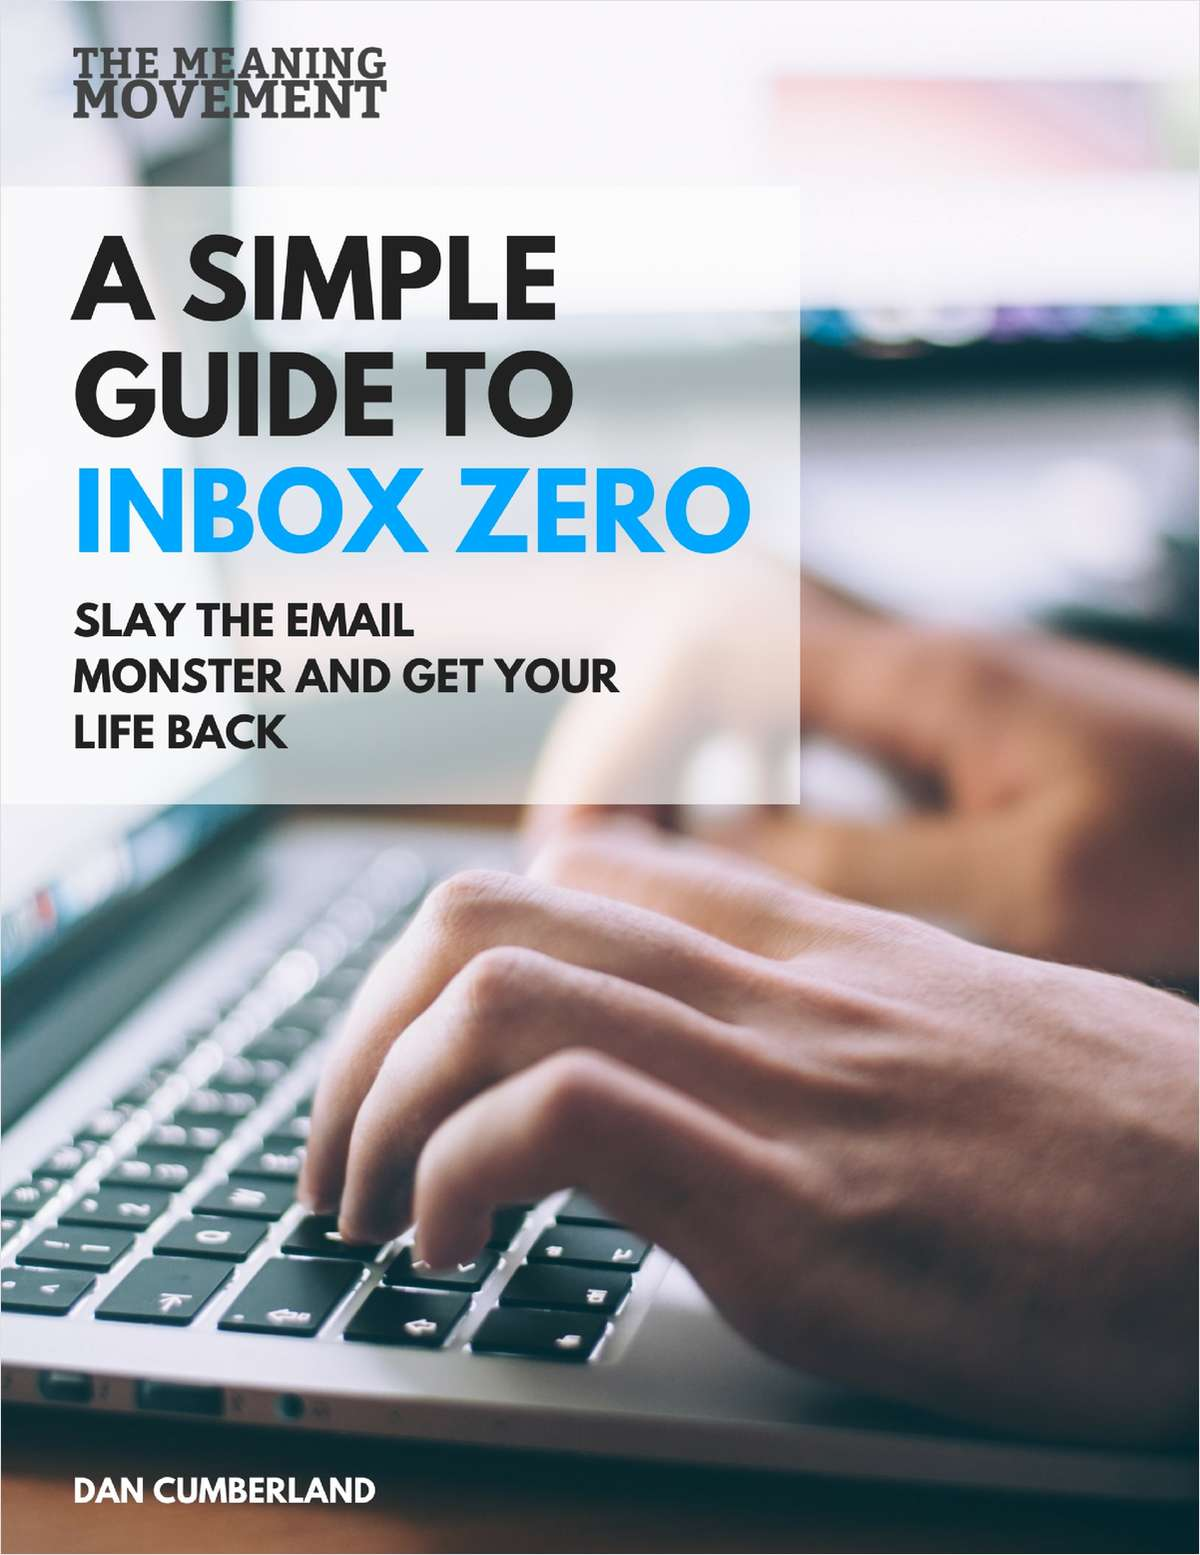 A Simple Guide to Inbox Zero - Slay the Email Monster and Get Your Life Back